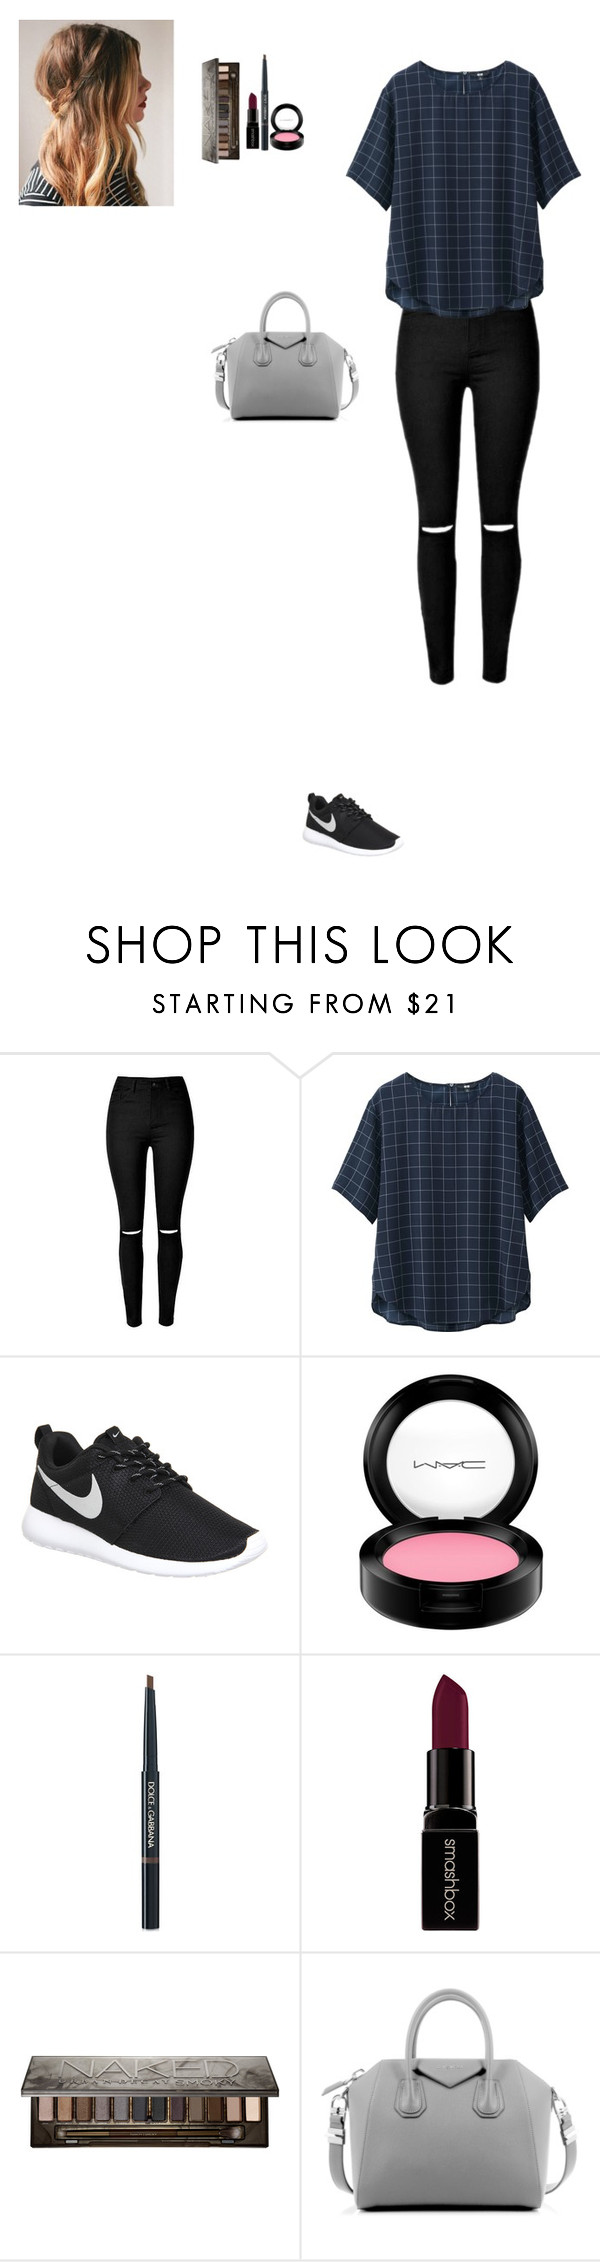 """Untitled #190"" by nicoletteromo ❤ liked on Polyvore featuring Uniqlo, NIKE, MAC Cosmetics, Dolce&Gabbana, Smashbox, Urban Decay, Givenchy, women's clothing, women and female"